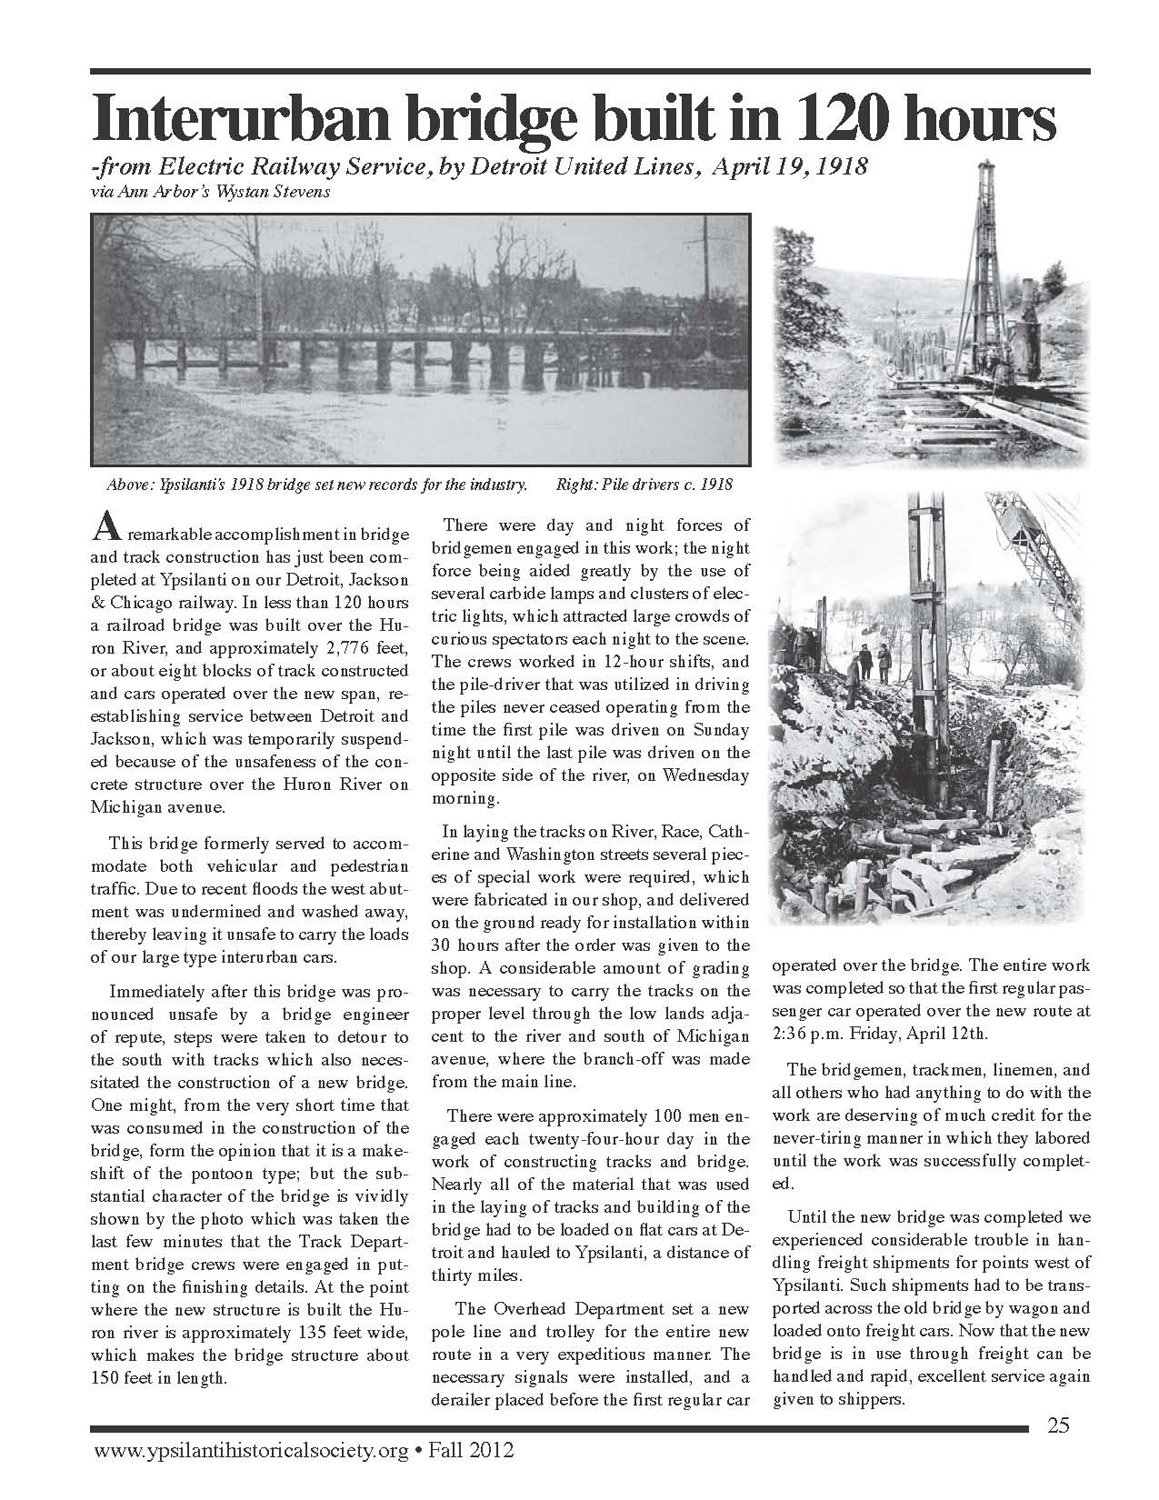 Bridge Built in 120 Hours - from Electric Railway Service By Detroit United Lines, Publicity Dept. April 19, 1918 image